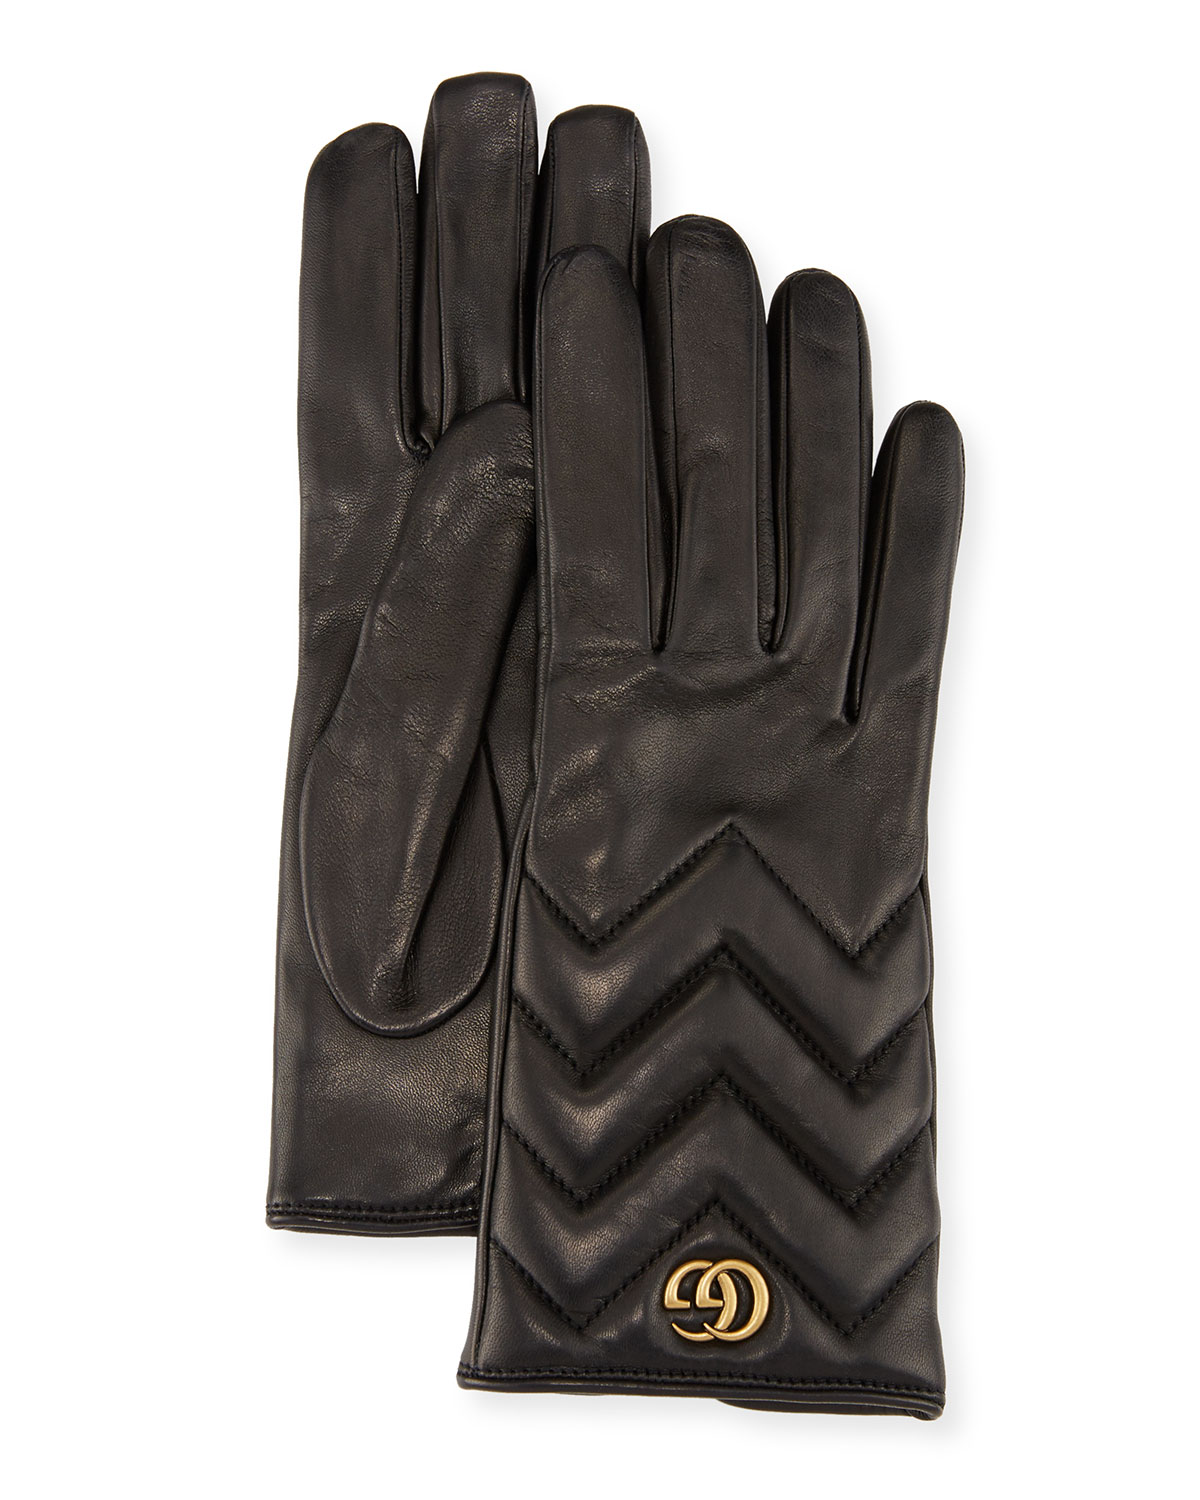 Gg Marmont Chevron Leather Gloves, Black, Rose